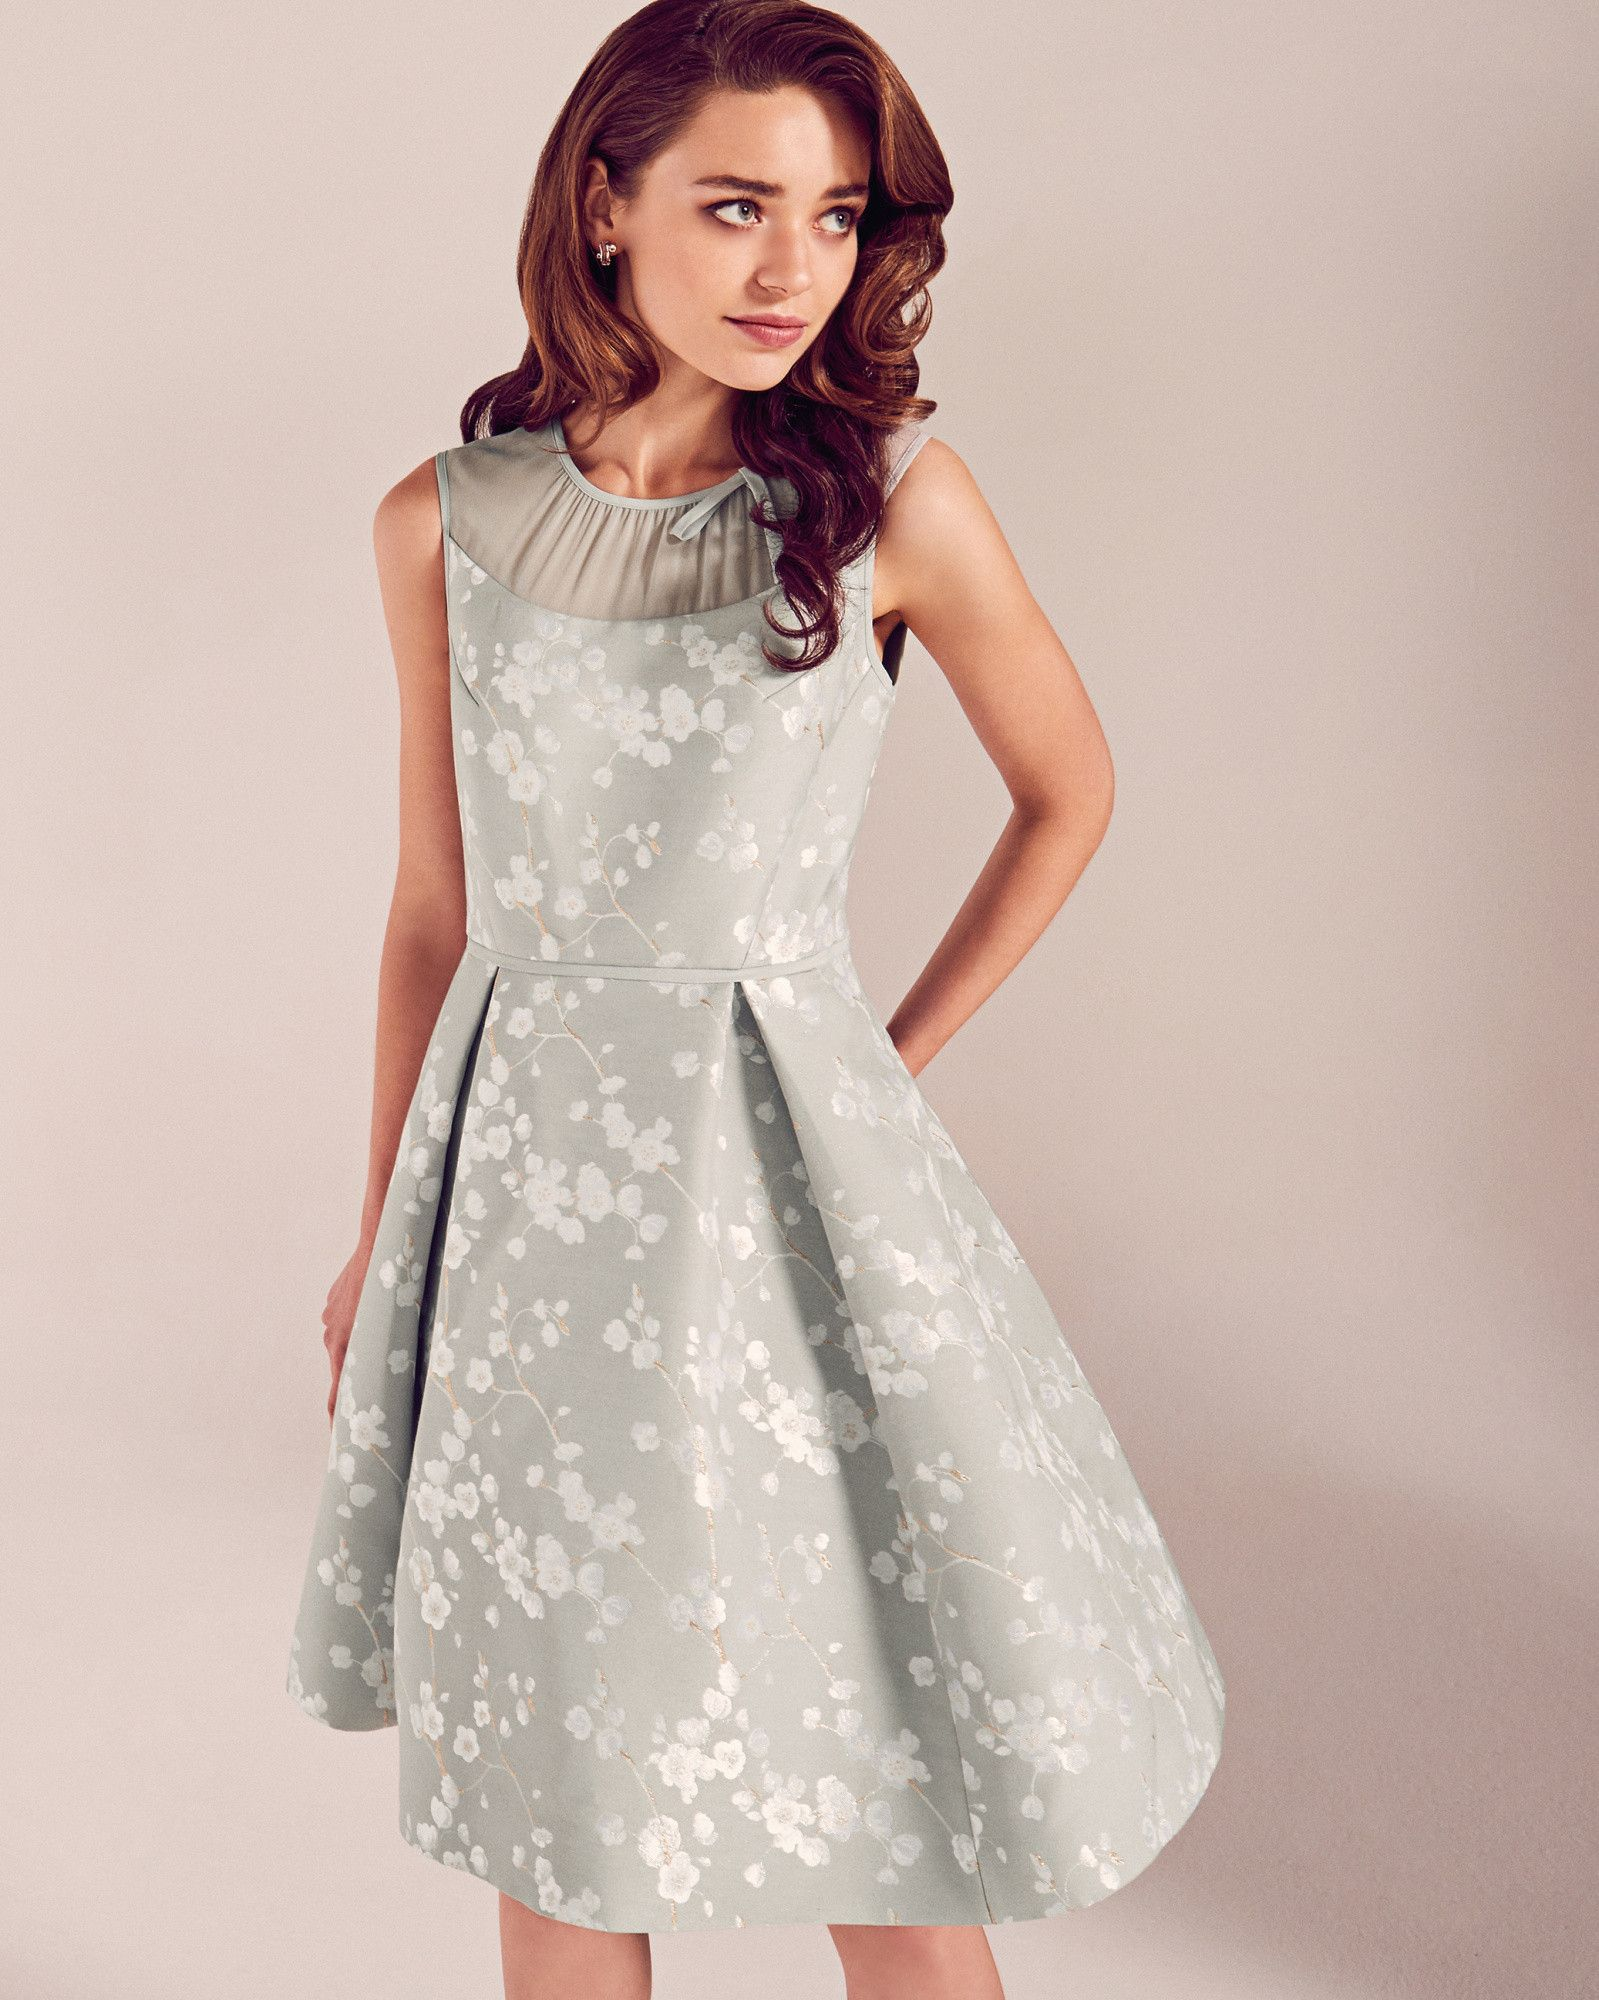 Oriental blossom pleated dress light grey ss17 tie the knot oriental blossom pleated dress light grey ss17 tie the knot ted baker uk ombrellifo Choice Image